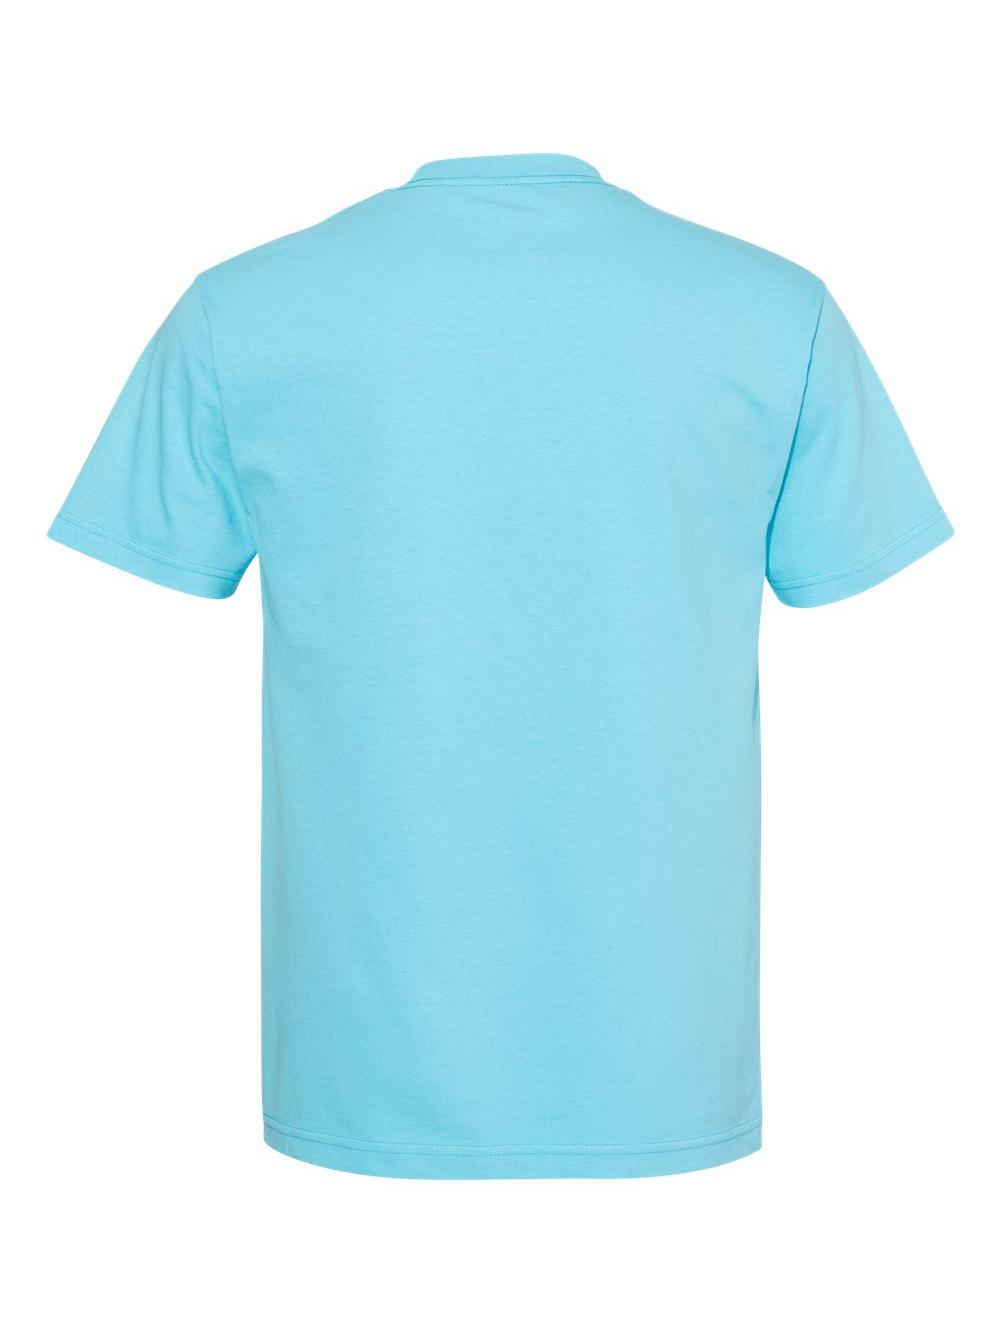 ALSTYLE-Classic-T-Shirt-1301 thumbnail 57